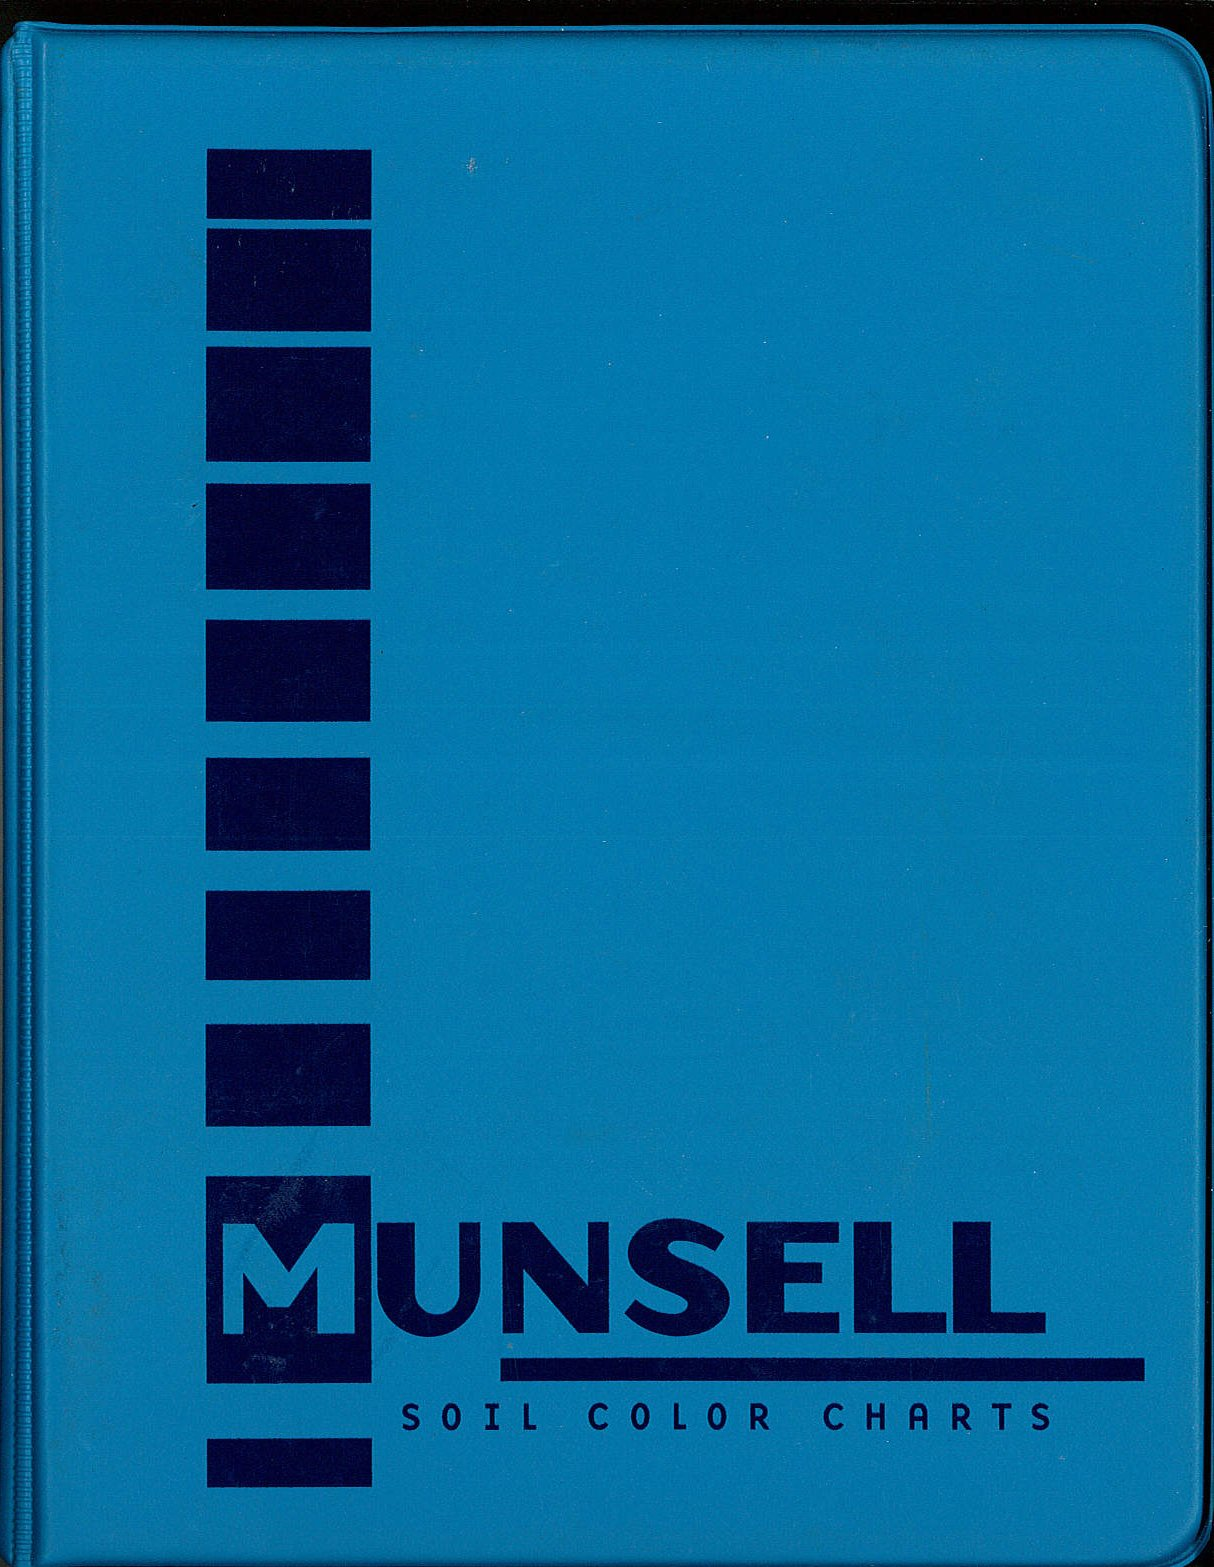 Munsell soil color chart amazon the new munsell student color munsell soil color charts year 2000 revised washable edition nvjuhfo Gallery